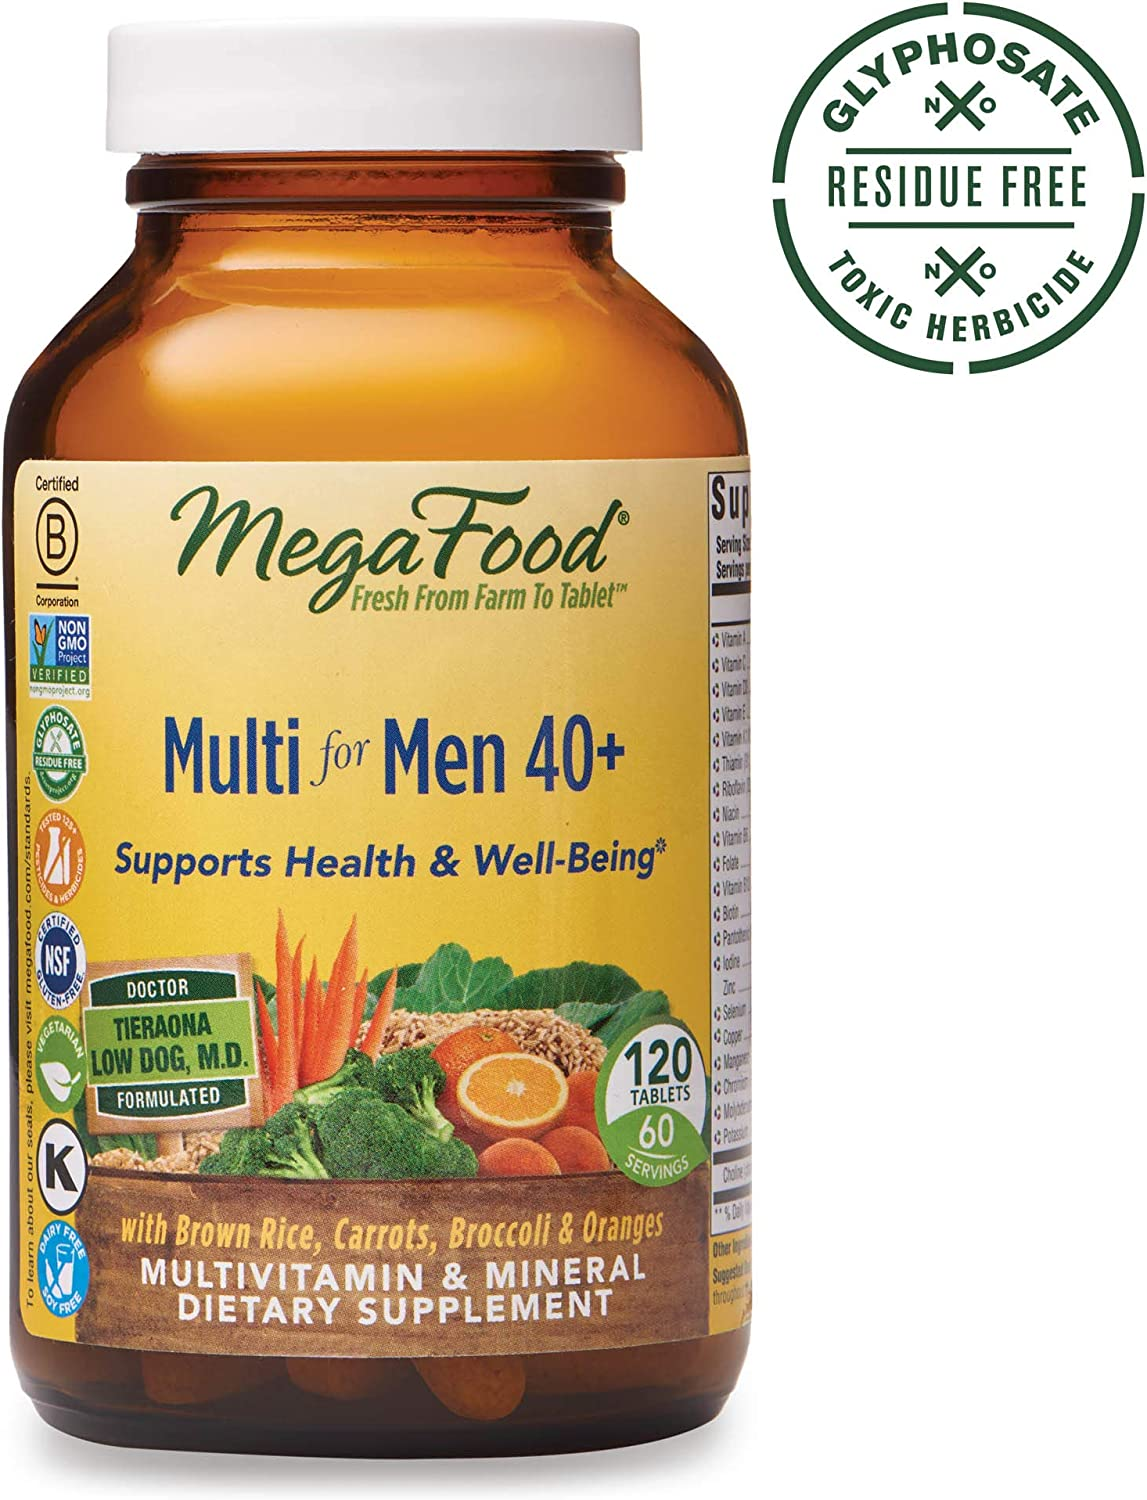 MegaFood, Multi for Men 40 , Supports Optimal Health and Wellbeing, Multivitamin and Mineral Supplement, Gluten Free, Vegetarian, 120 tablets 60 servings